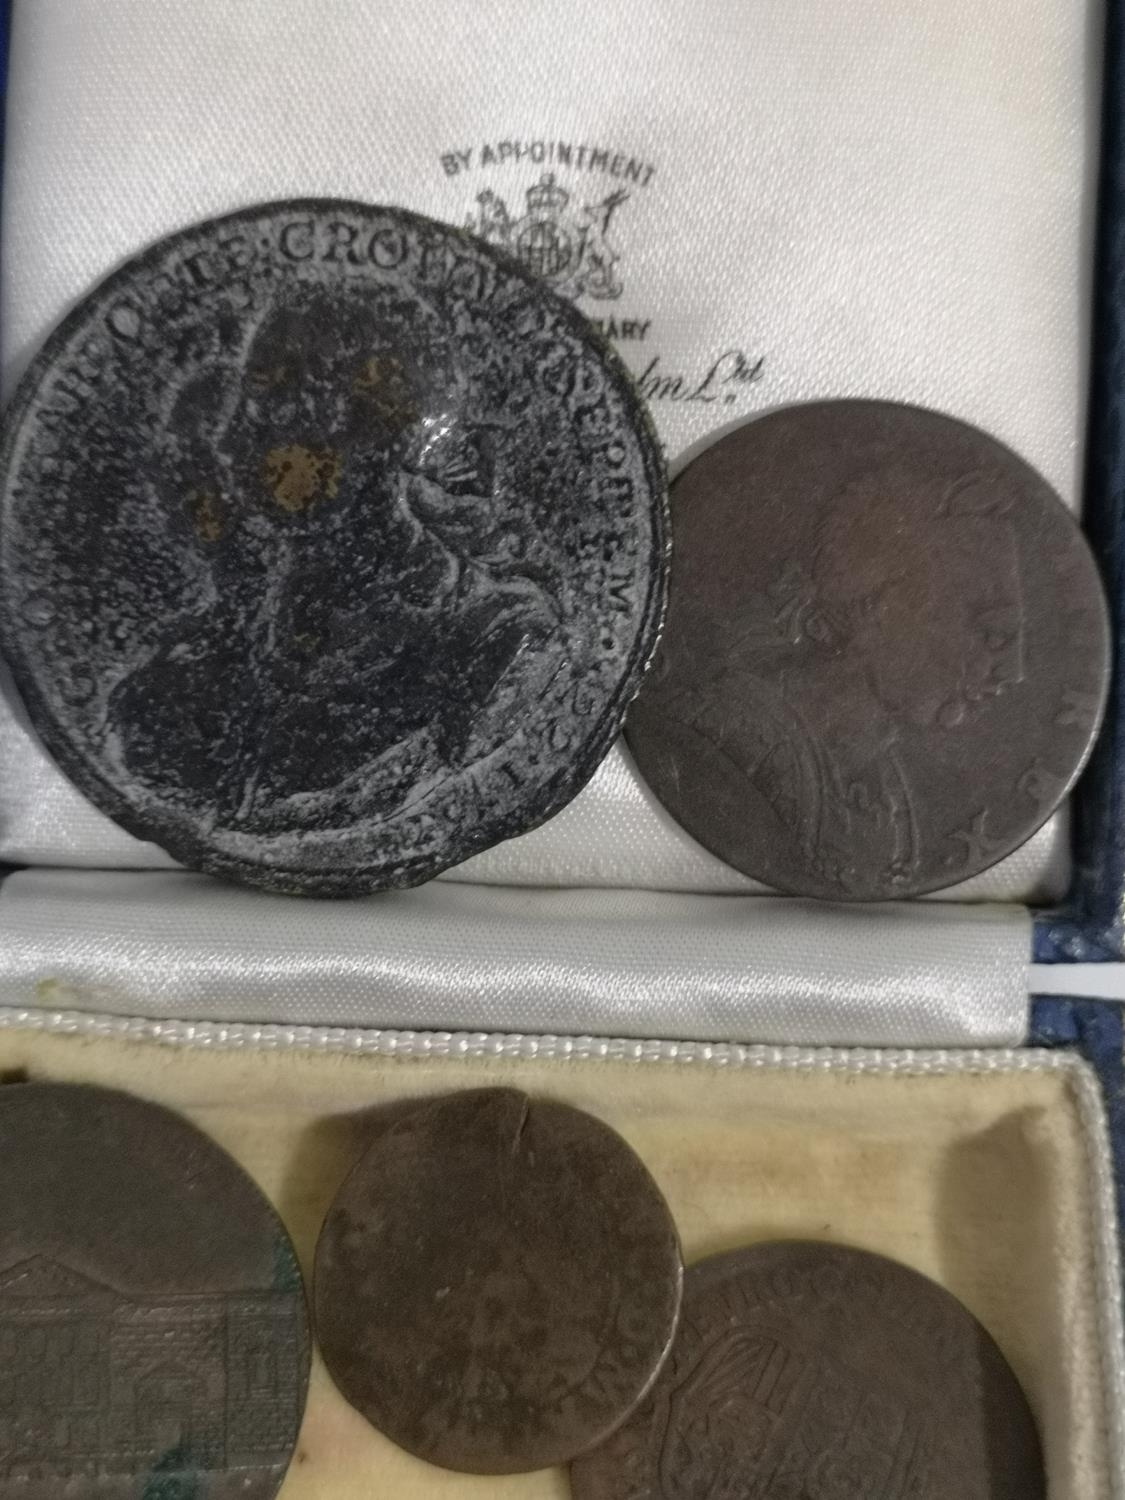 A COLLECTION OF OLD AND ANCIENT COINS TO INCLUDE WEST FRISIA 1627 COIN, 1767 LARGE COIN, NEWGATE - Image 3 of 4